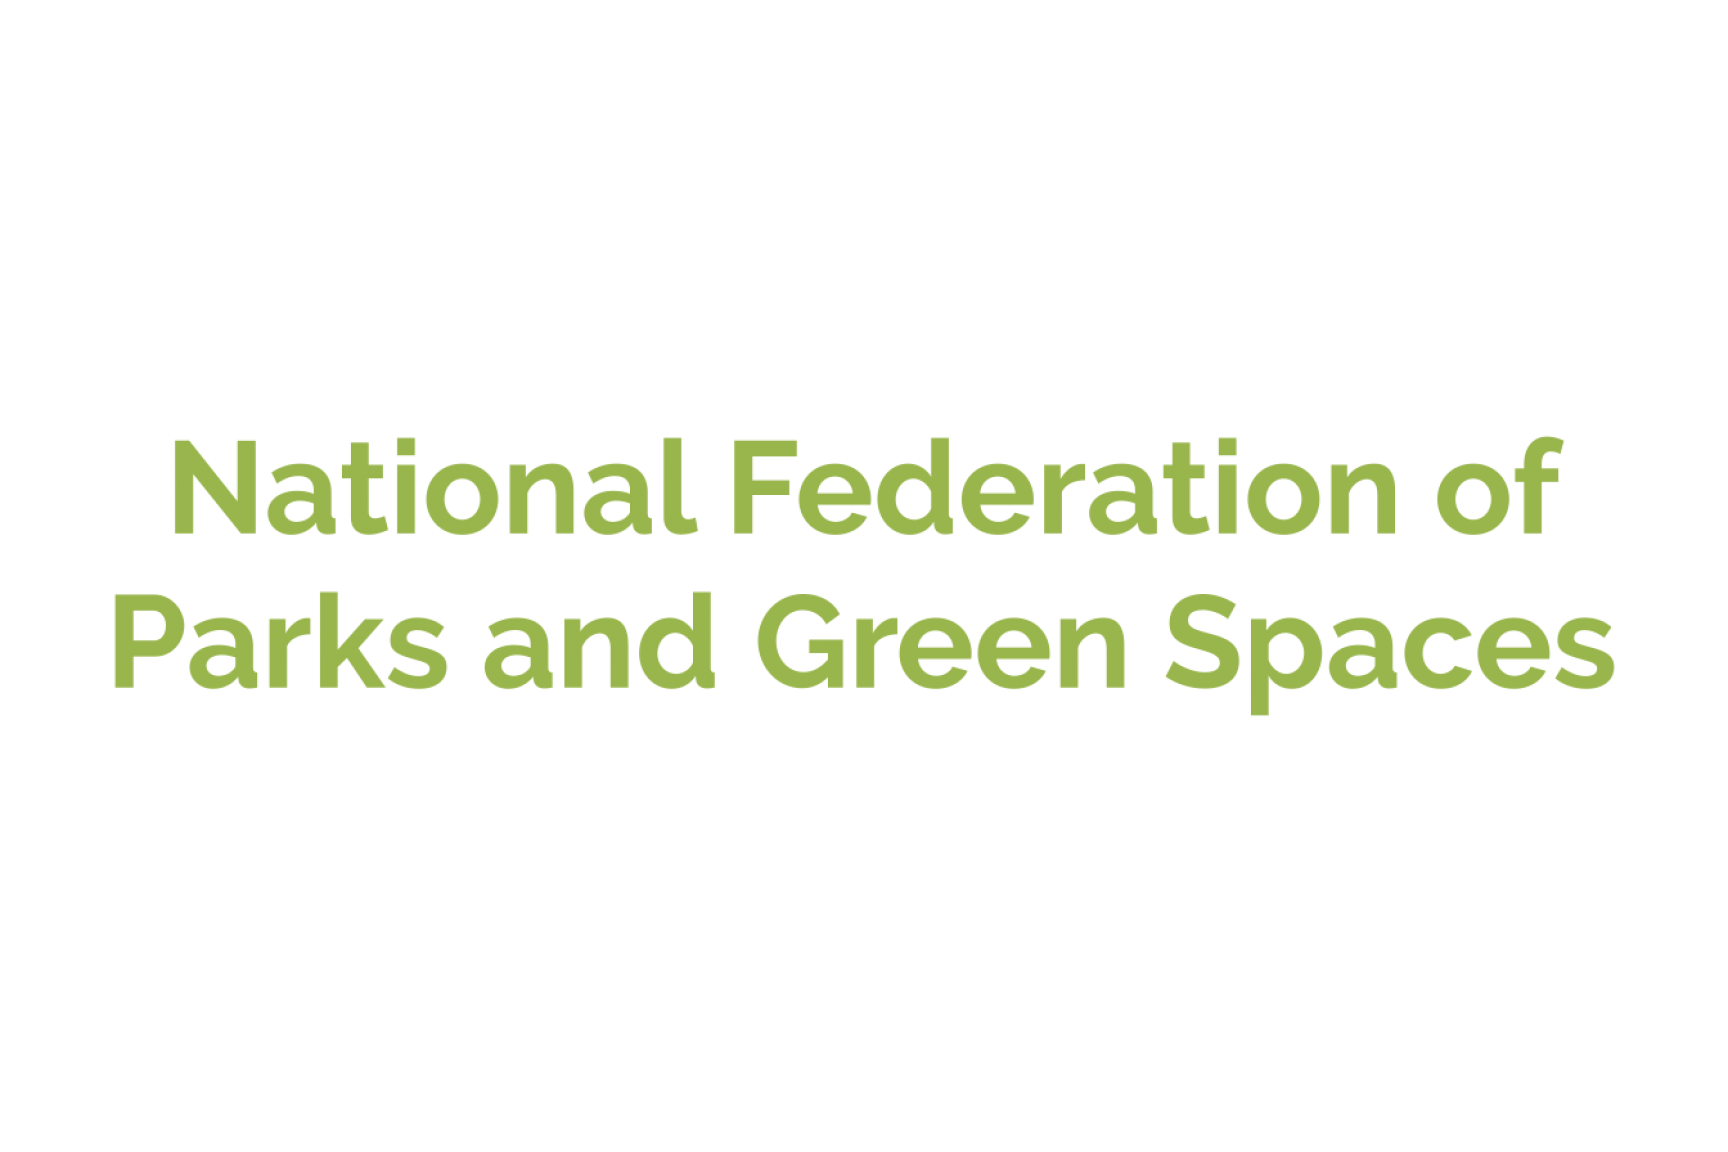 National Federation of Parks and Green Spaces